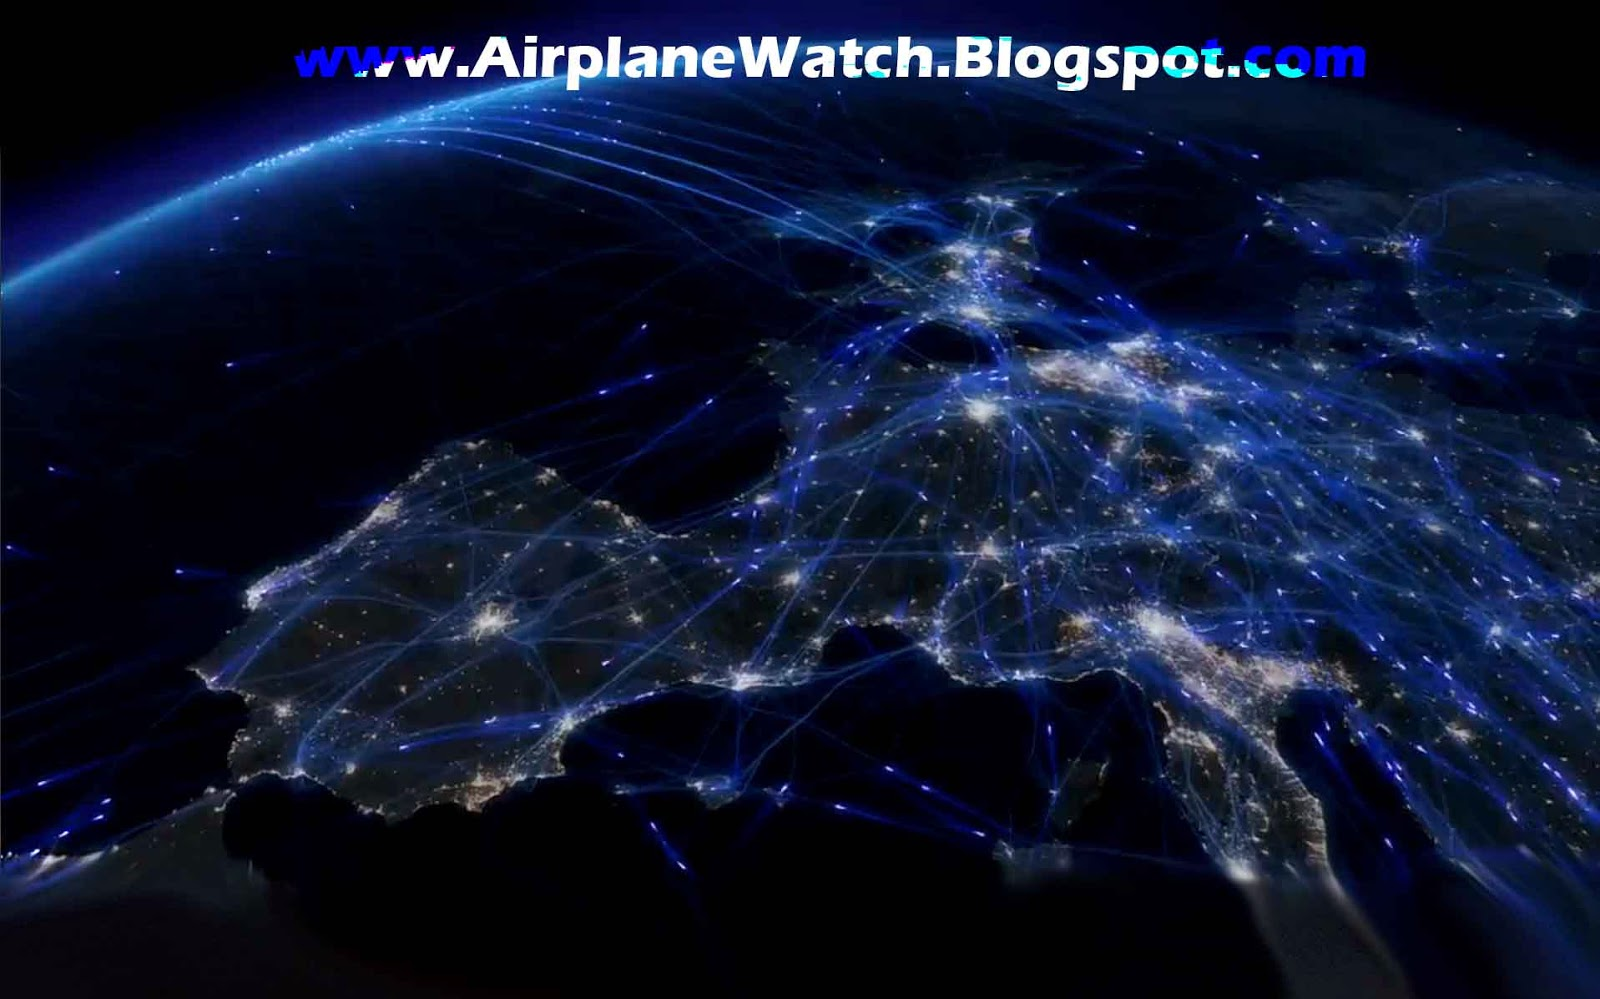 Amazing European Air Traffic Simulation in 24 Hour Period